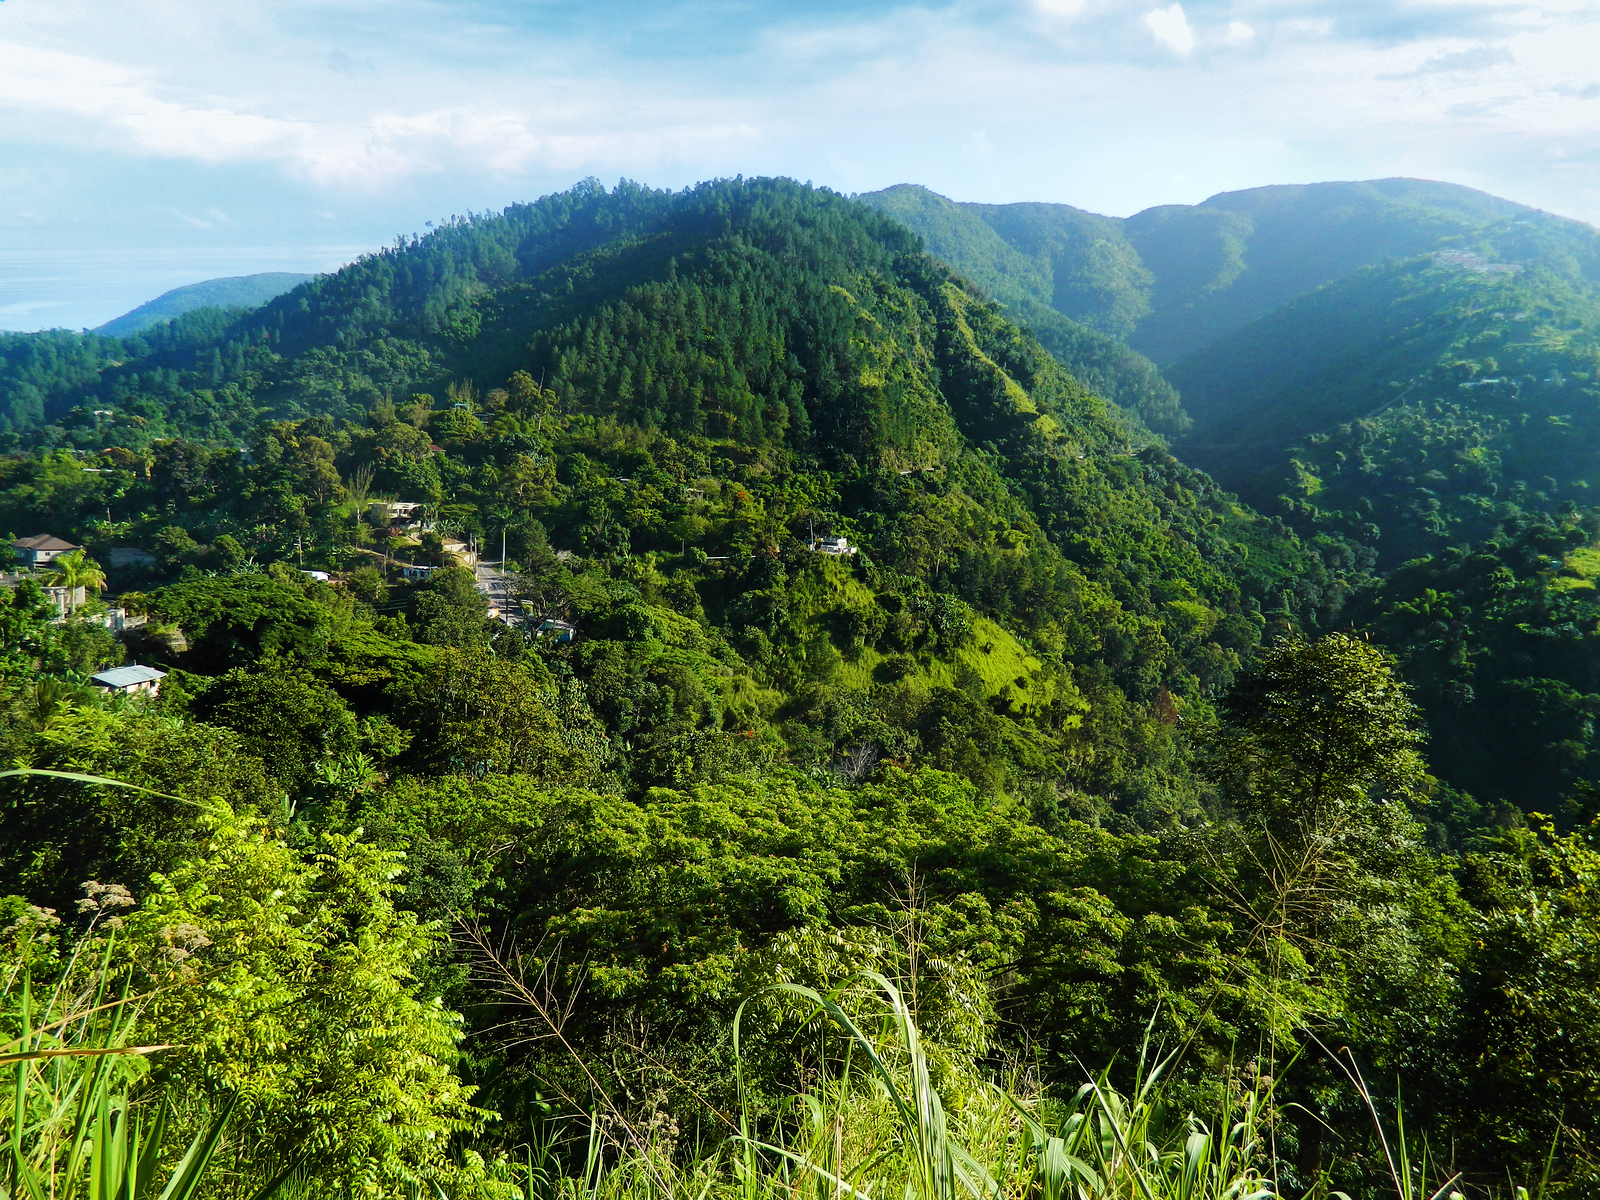 The Blue Mountains: Jamaica's first World Heritage Site